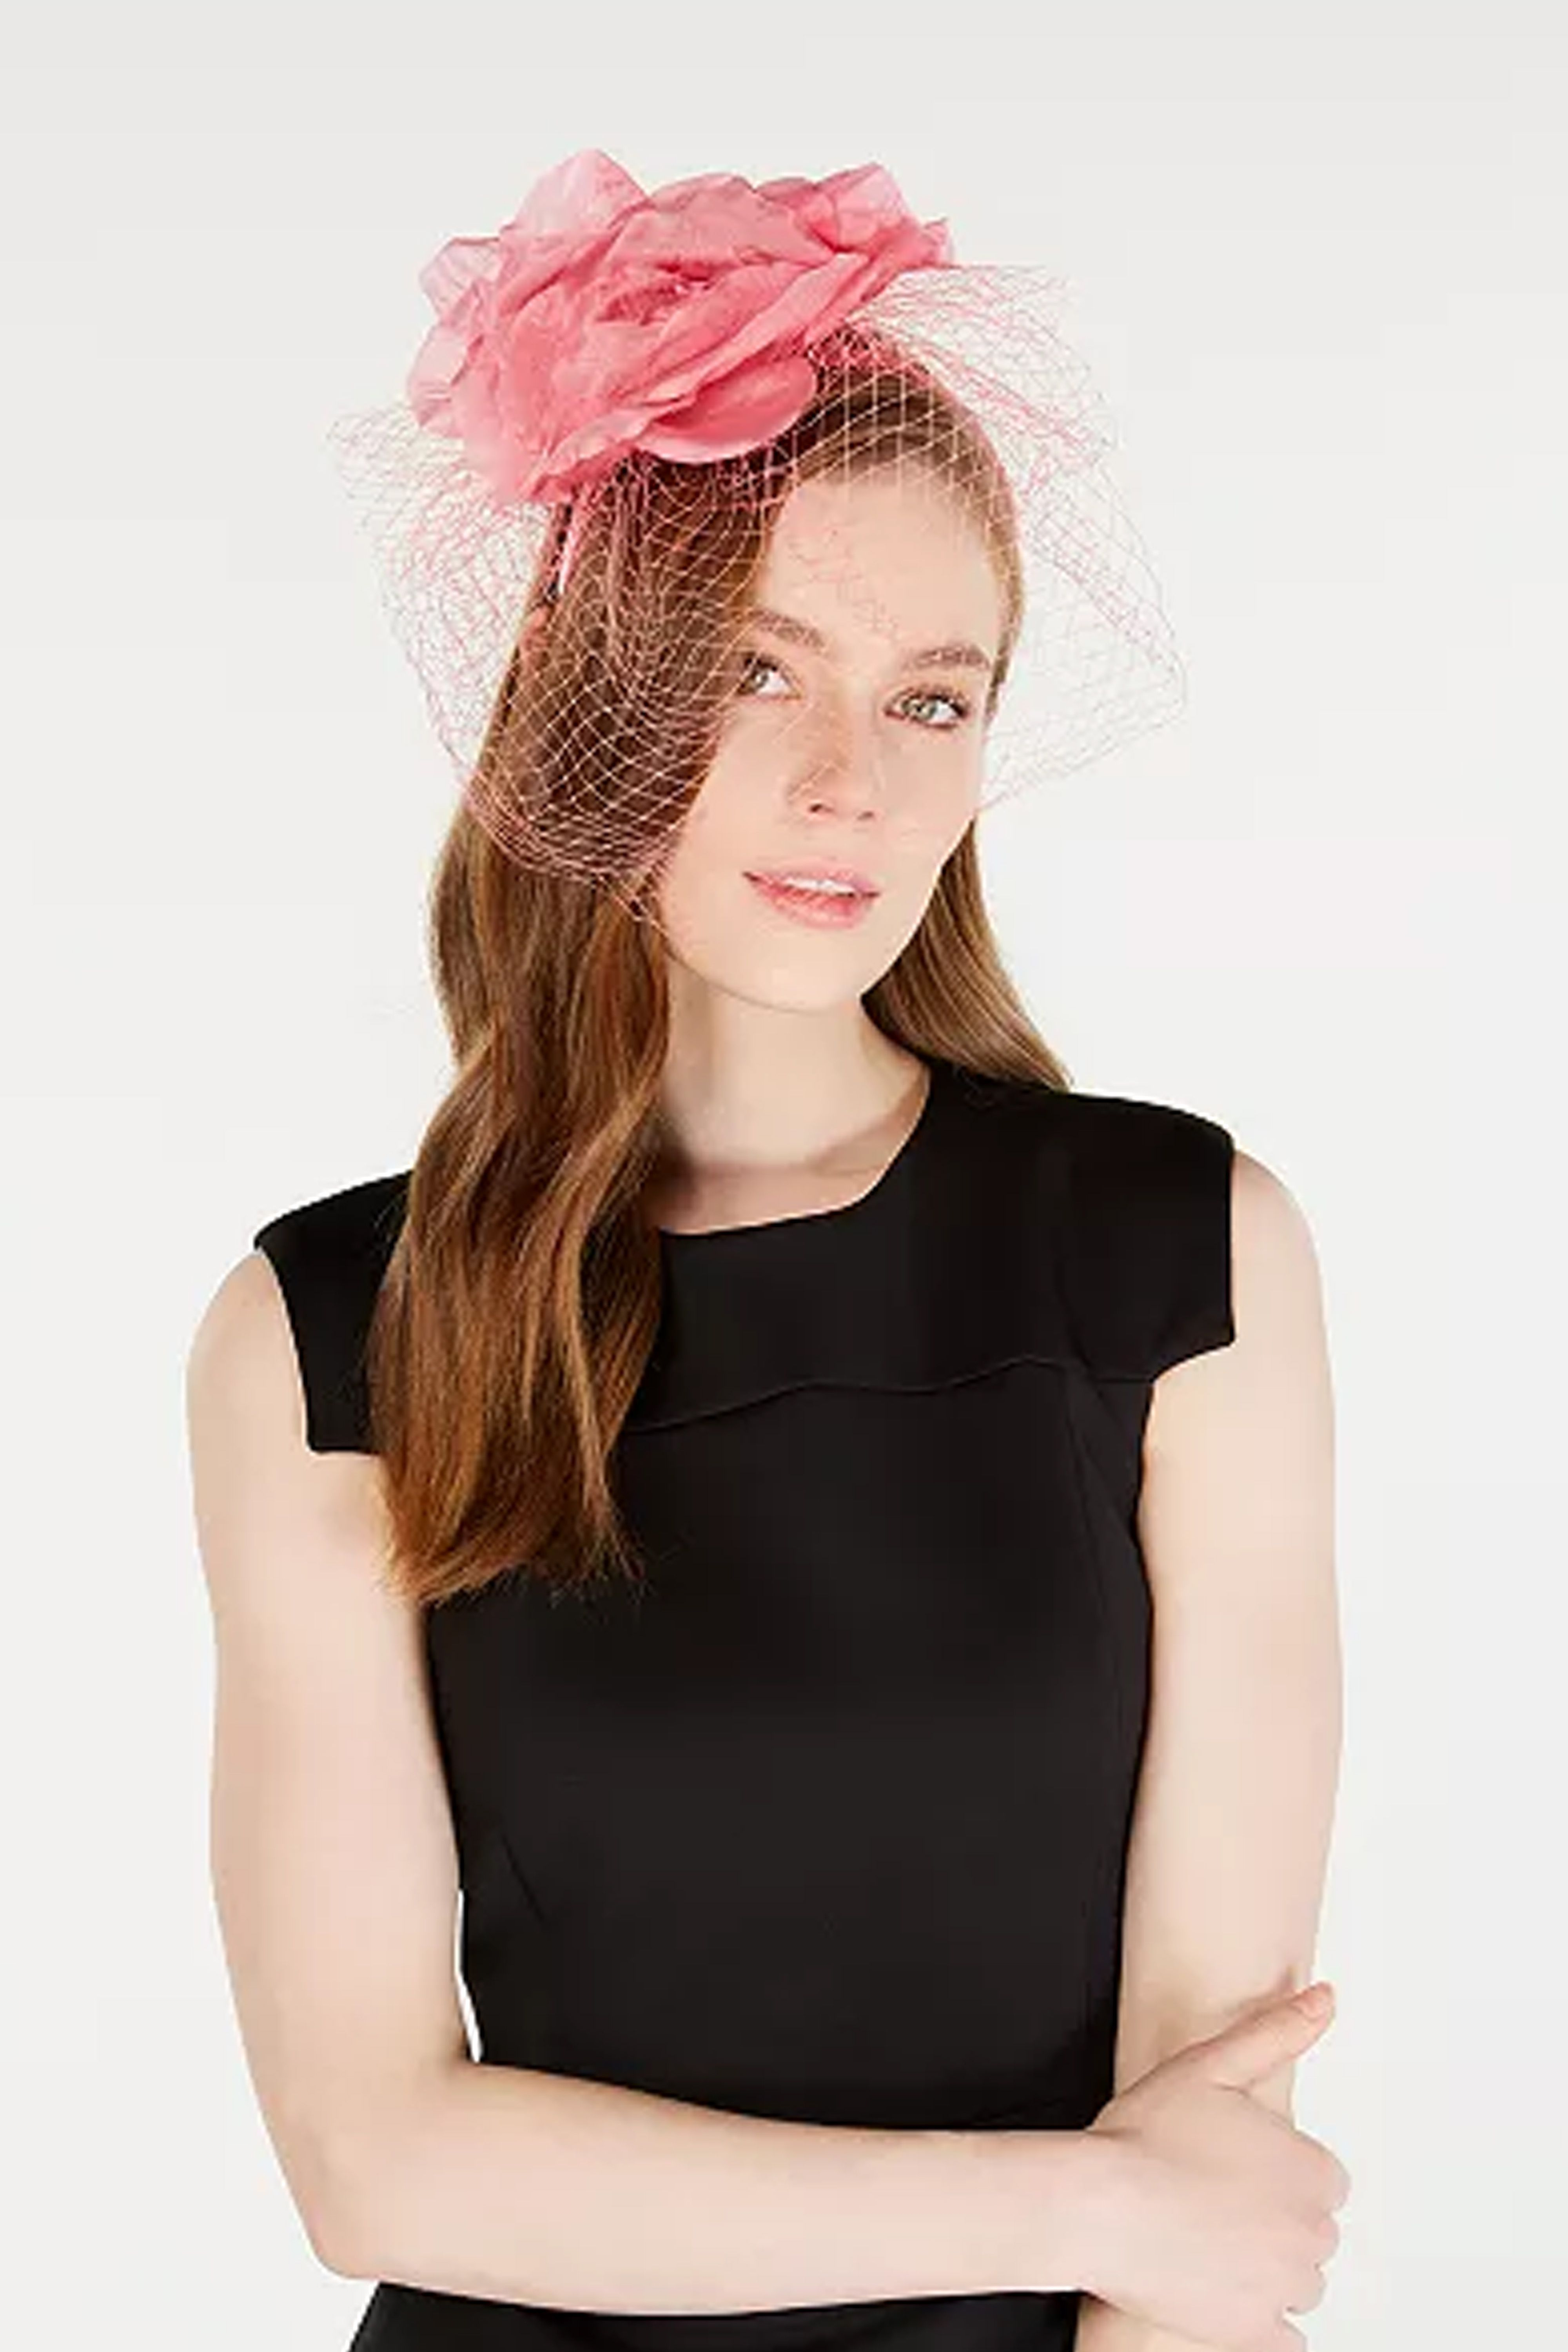 f60ab404eea Kentucky Derby Outfits - What to Wear to the Kentucky Derby 2019